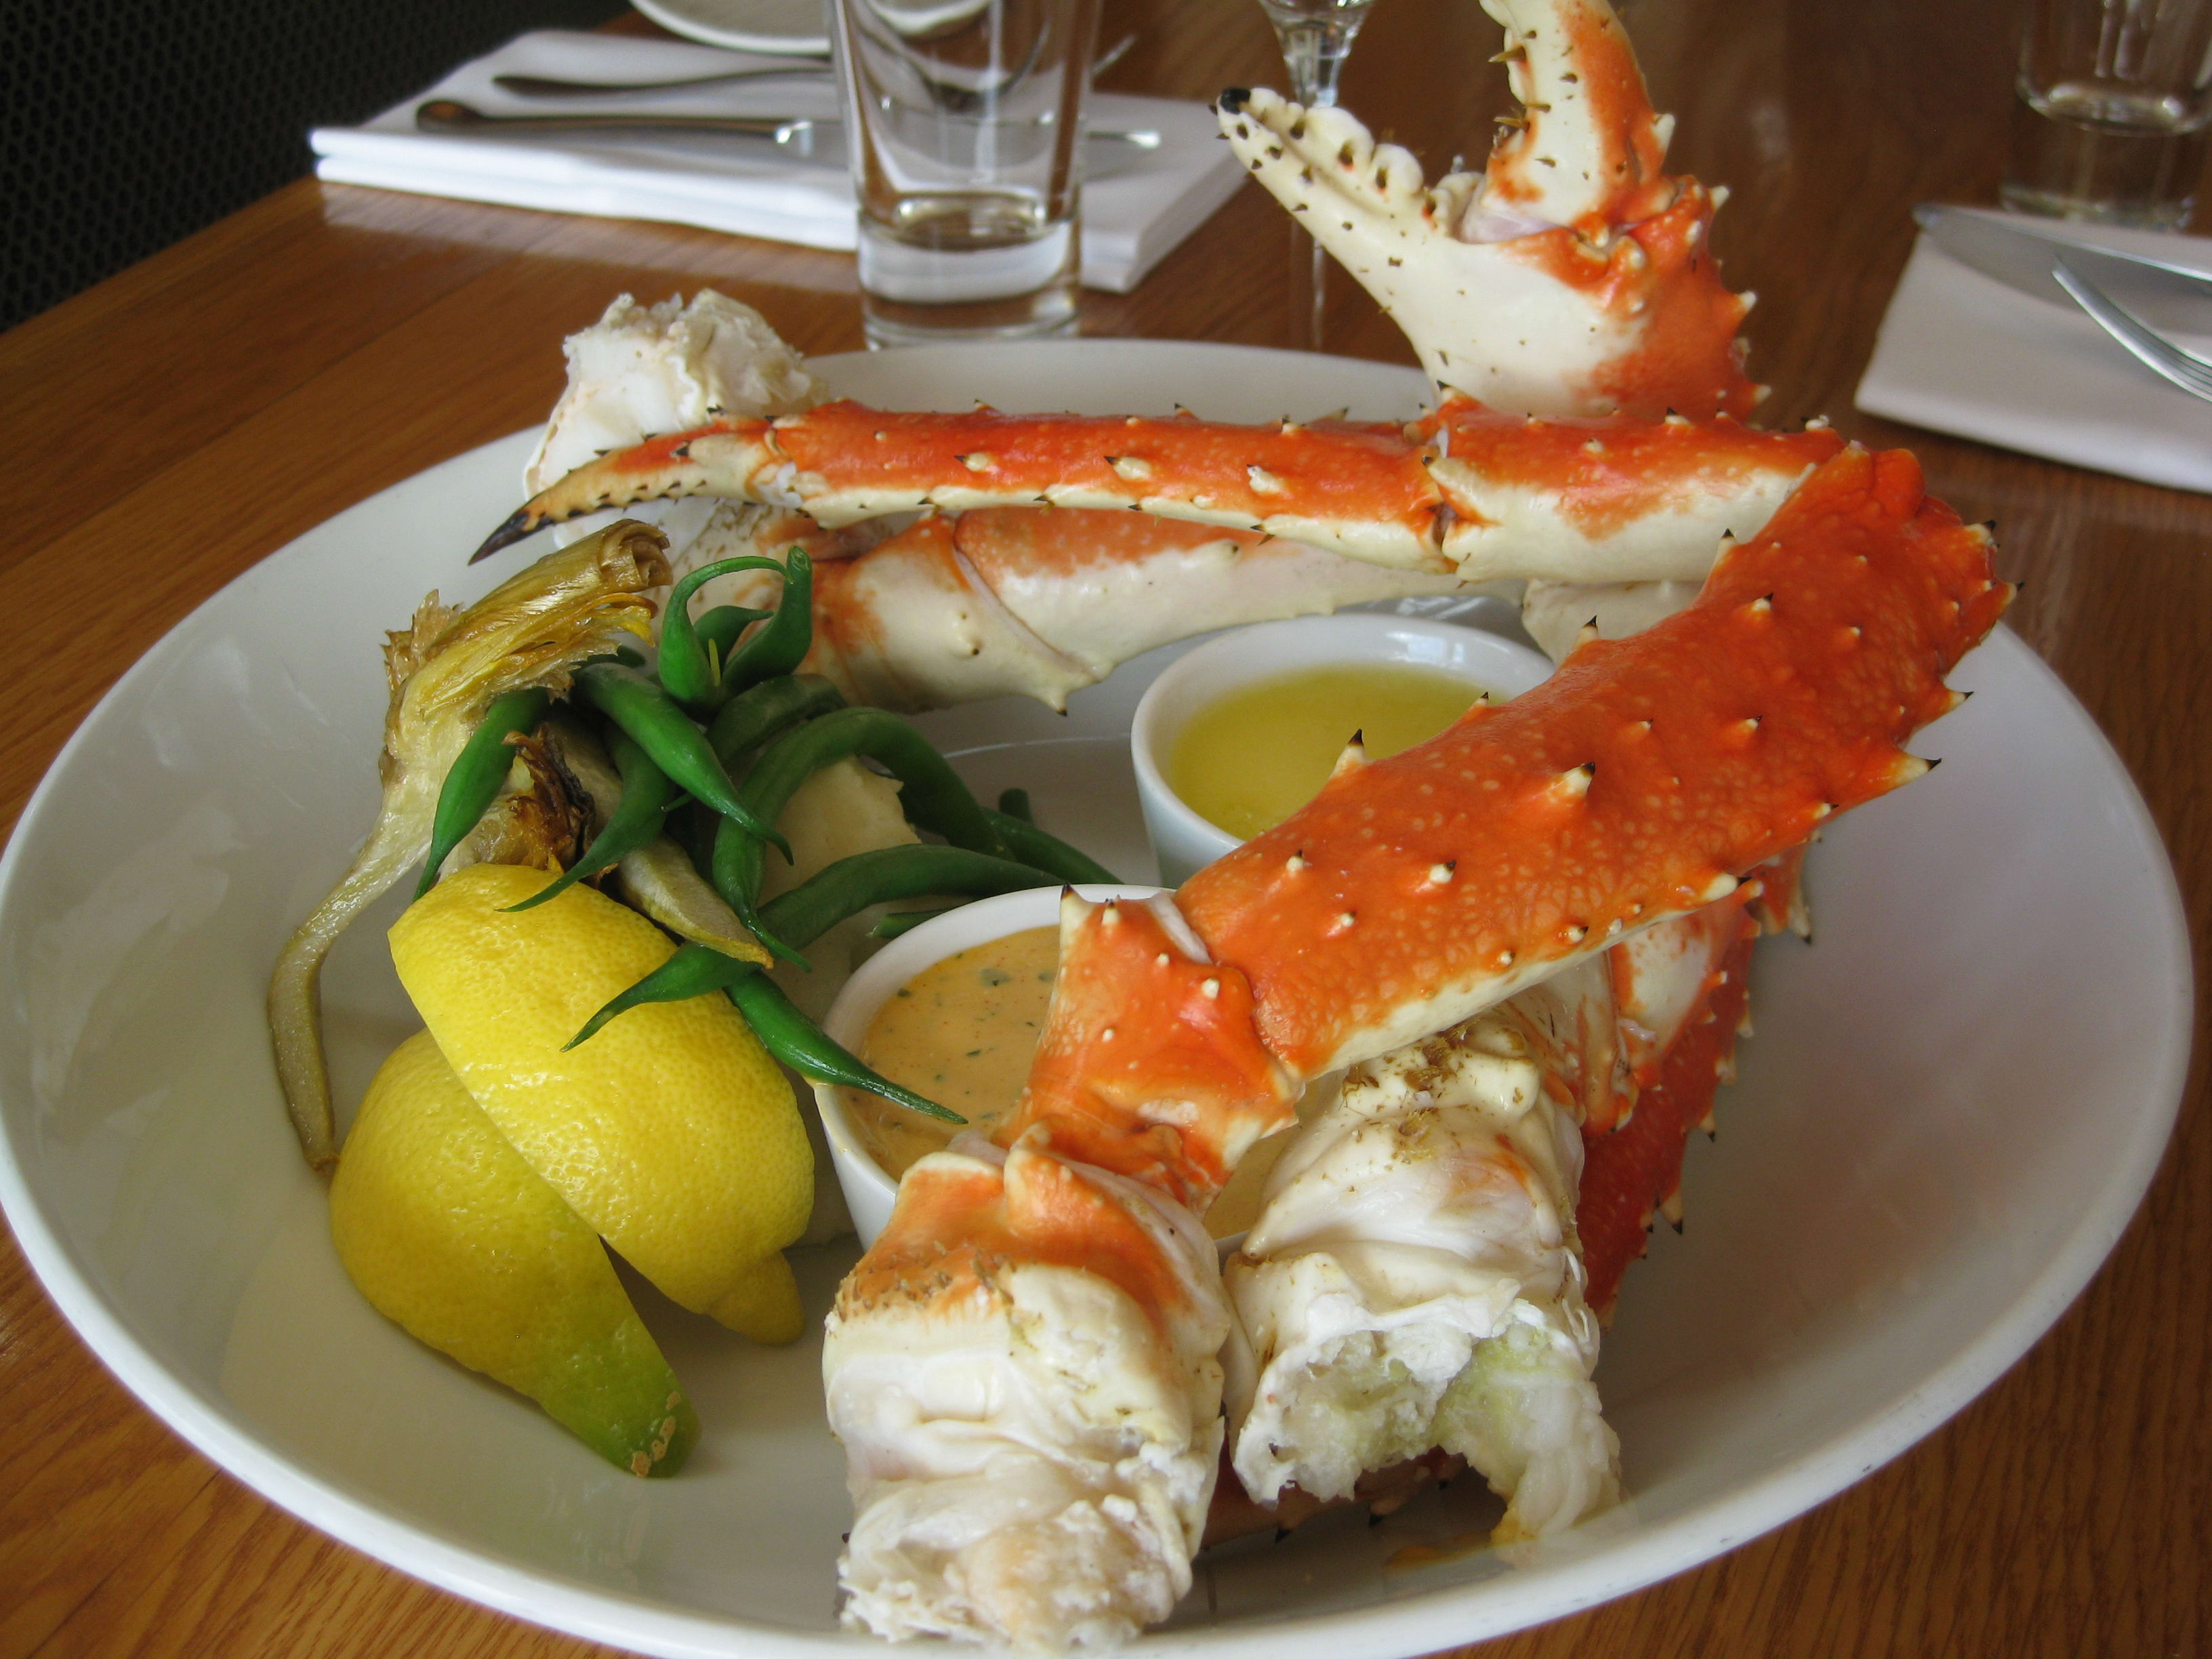 King Crab Legs at Ray's Boathouse Restaurant, Cafe & Catering